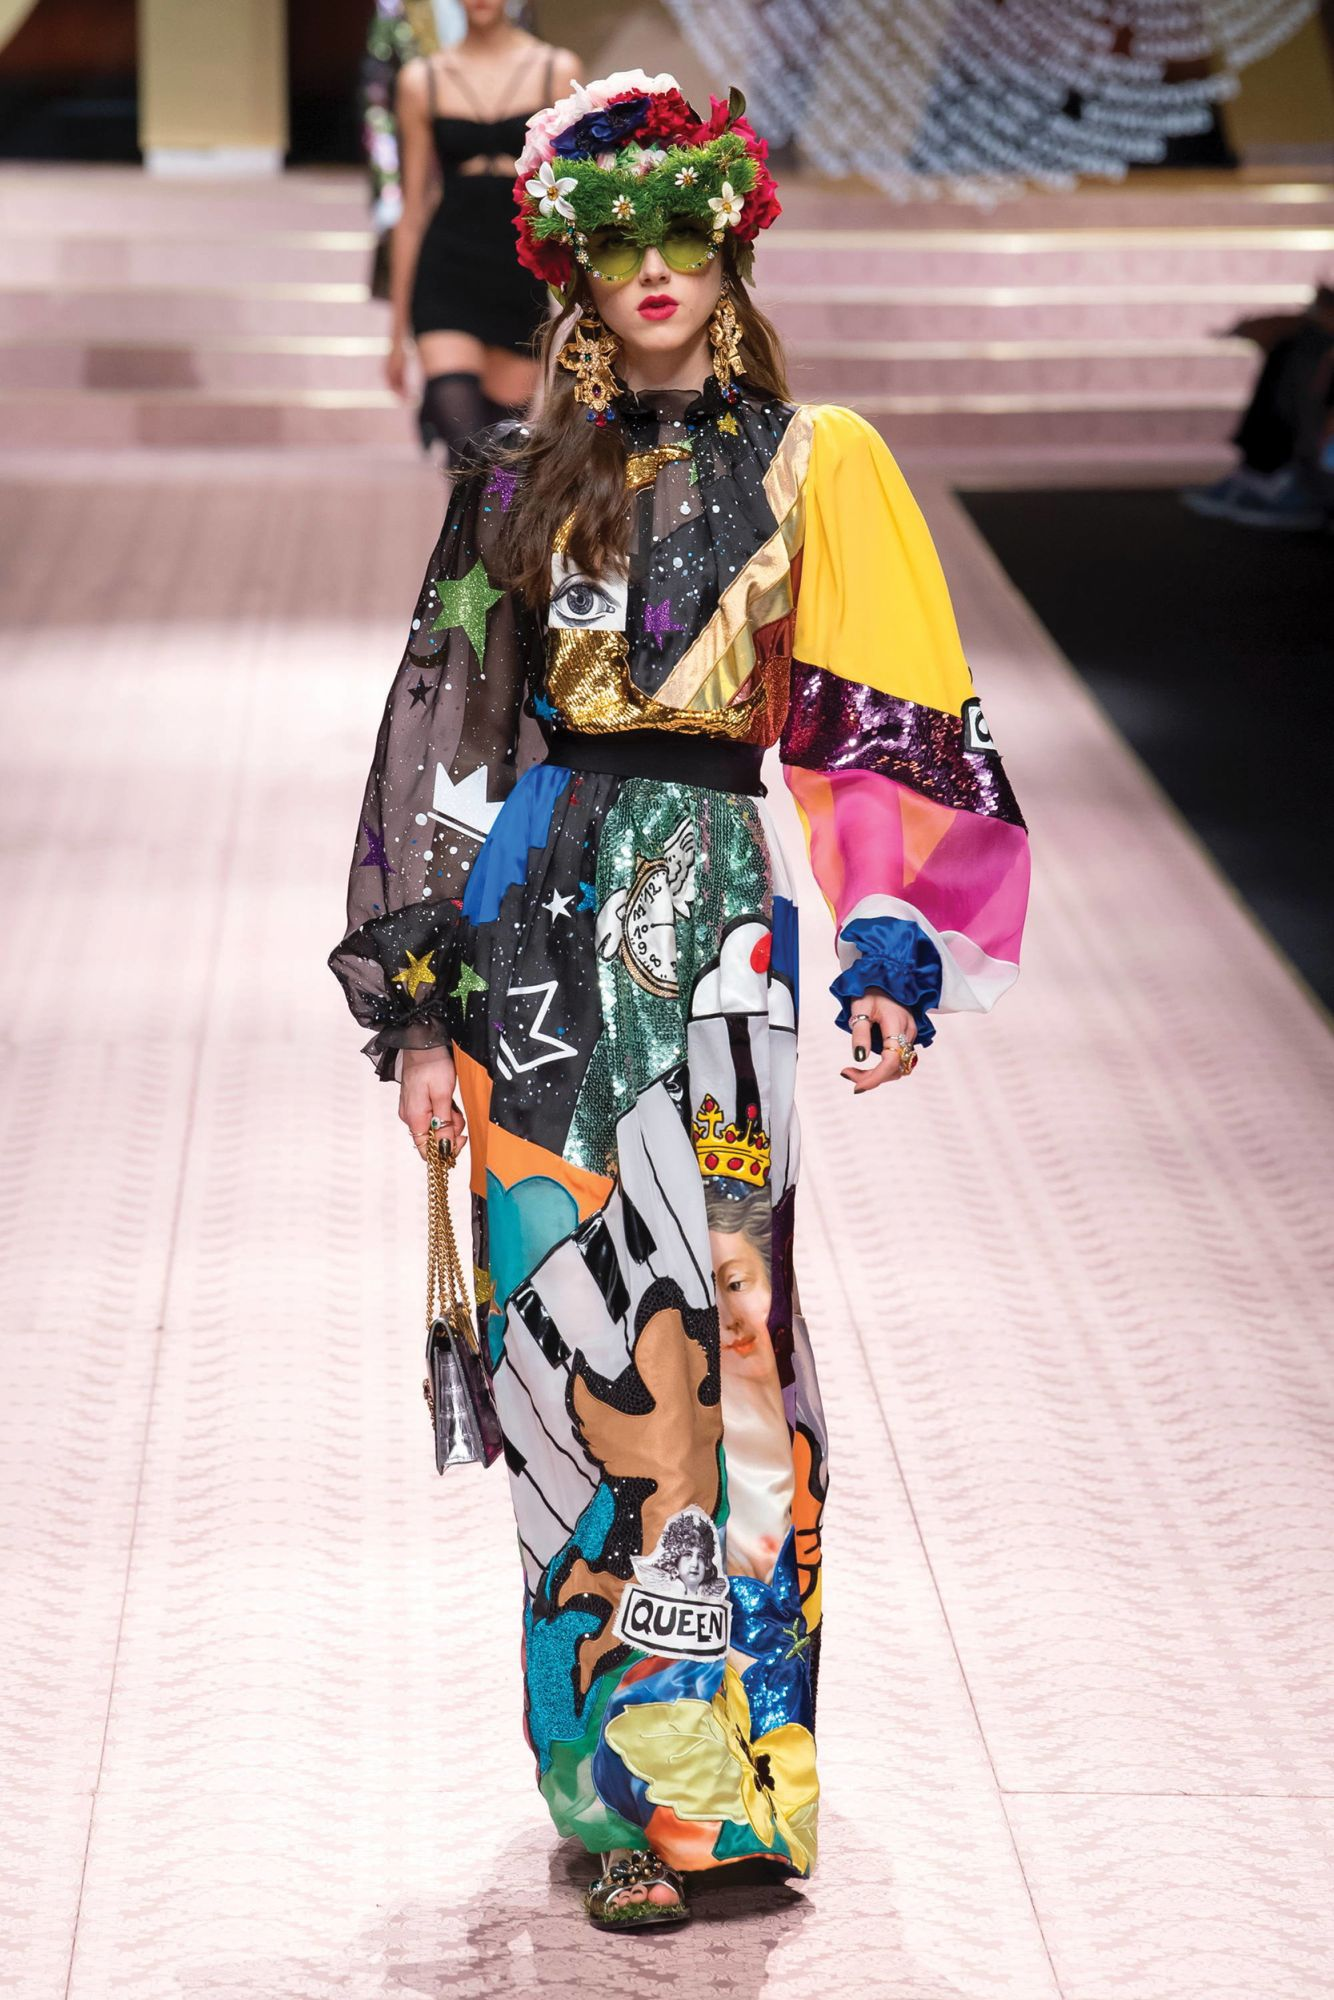 DOLCE & GABBANA | Graphic print dress from the spring/summer 2019 runway